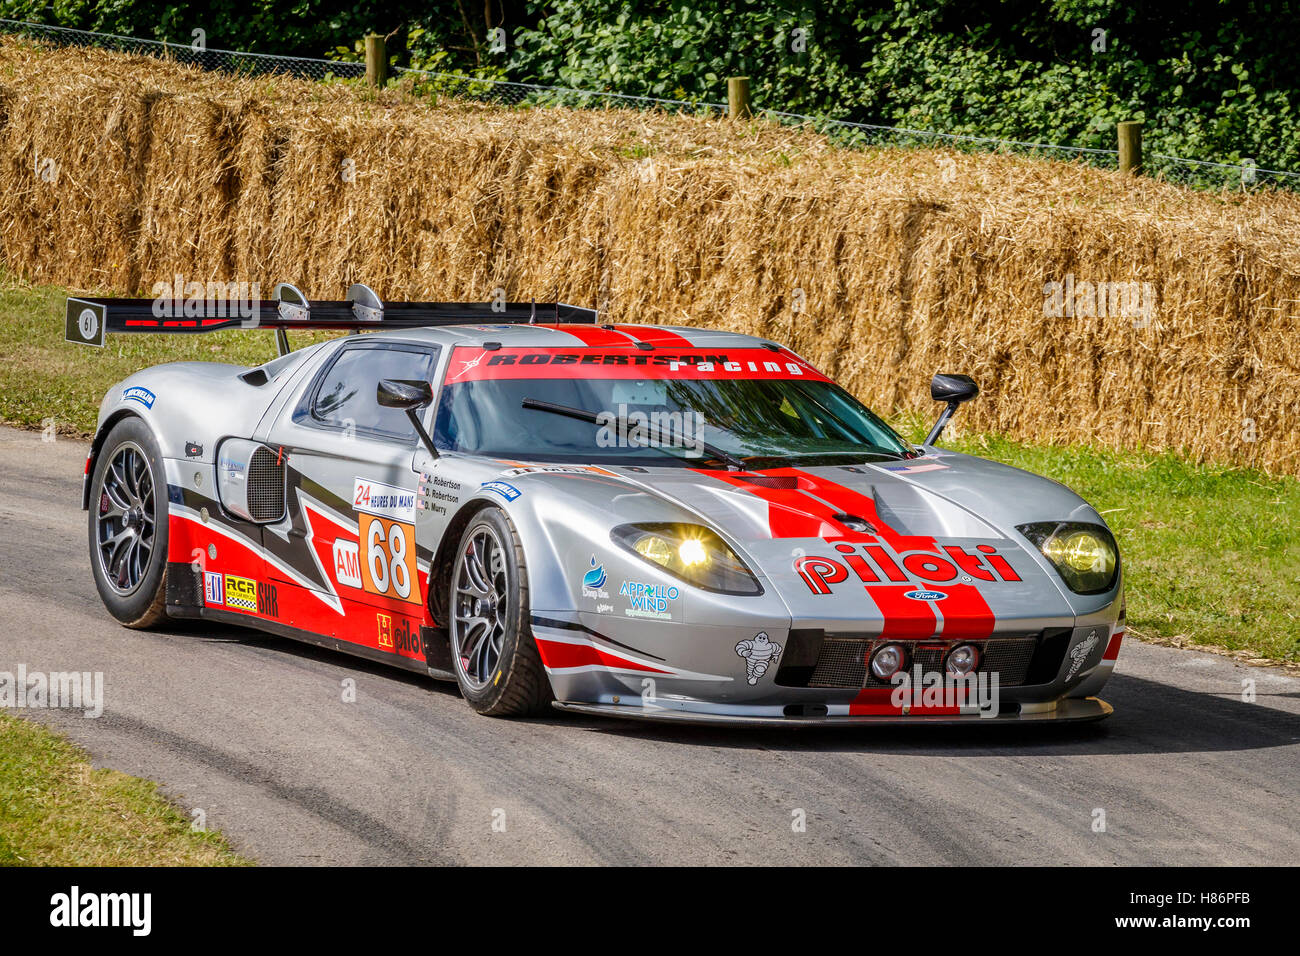 Ford Gt Lm Gte With Driver Andrea Robertson At The  Goodwood Festival Of Speed Sus Uk